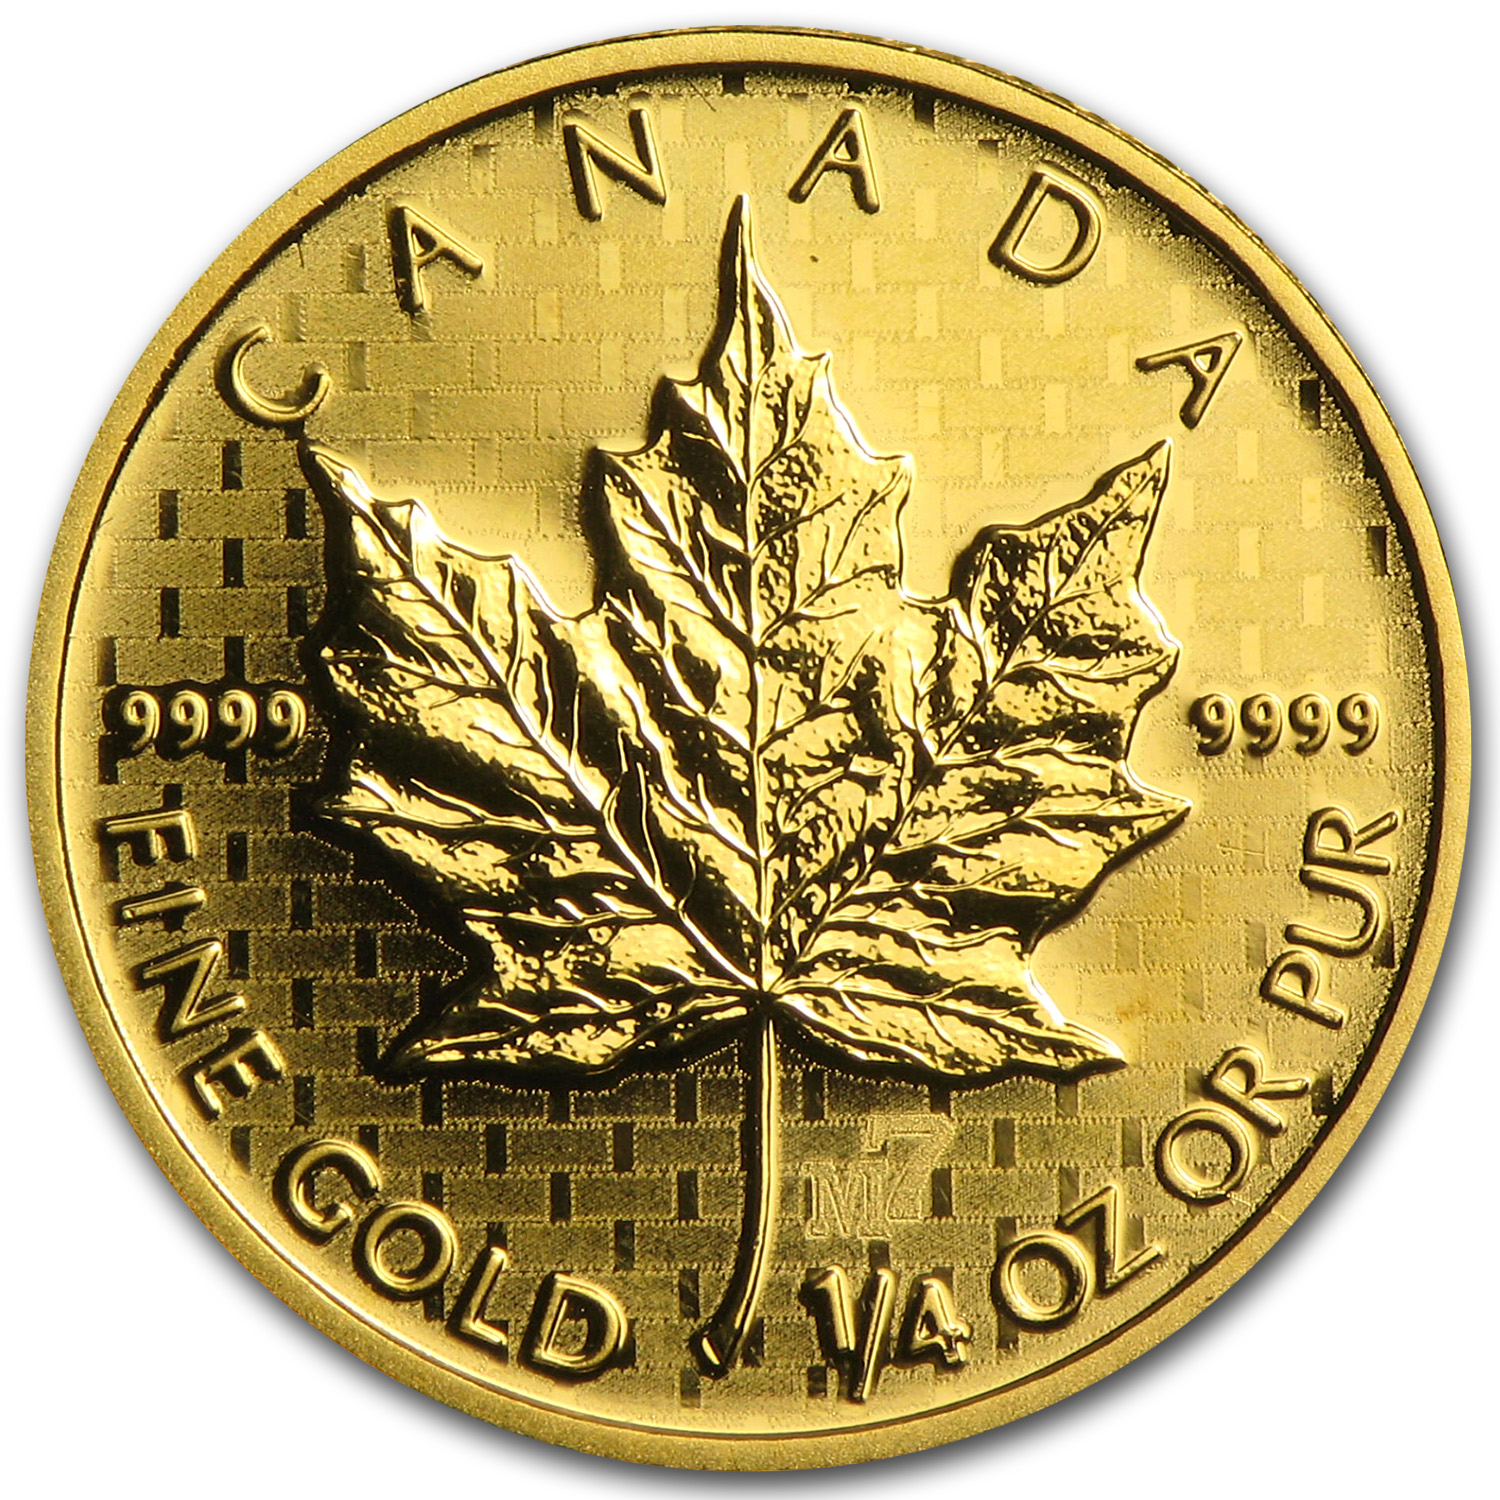 2005 1/4 oz Gold Canadian Maple Leaf M7 Privy